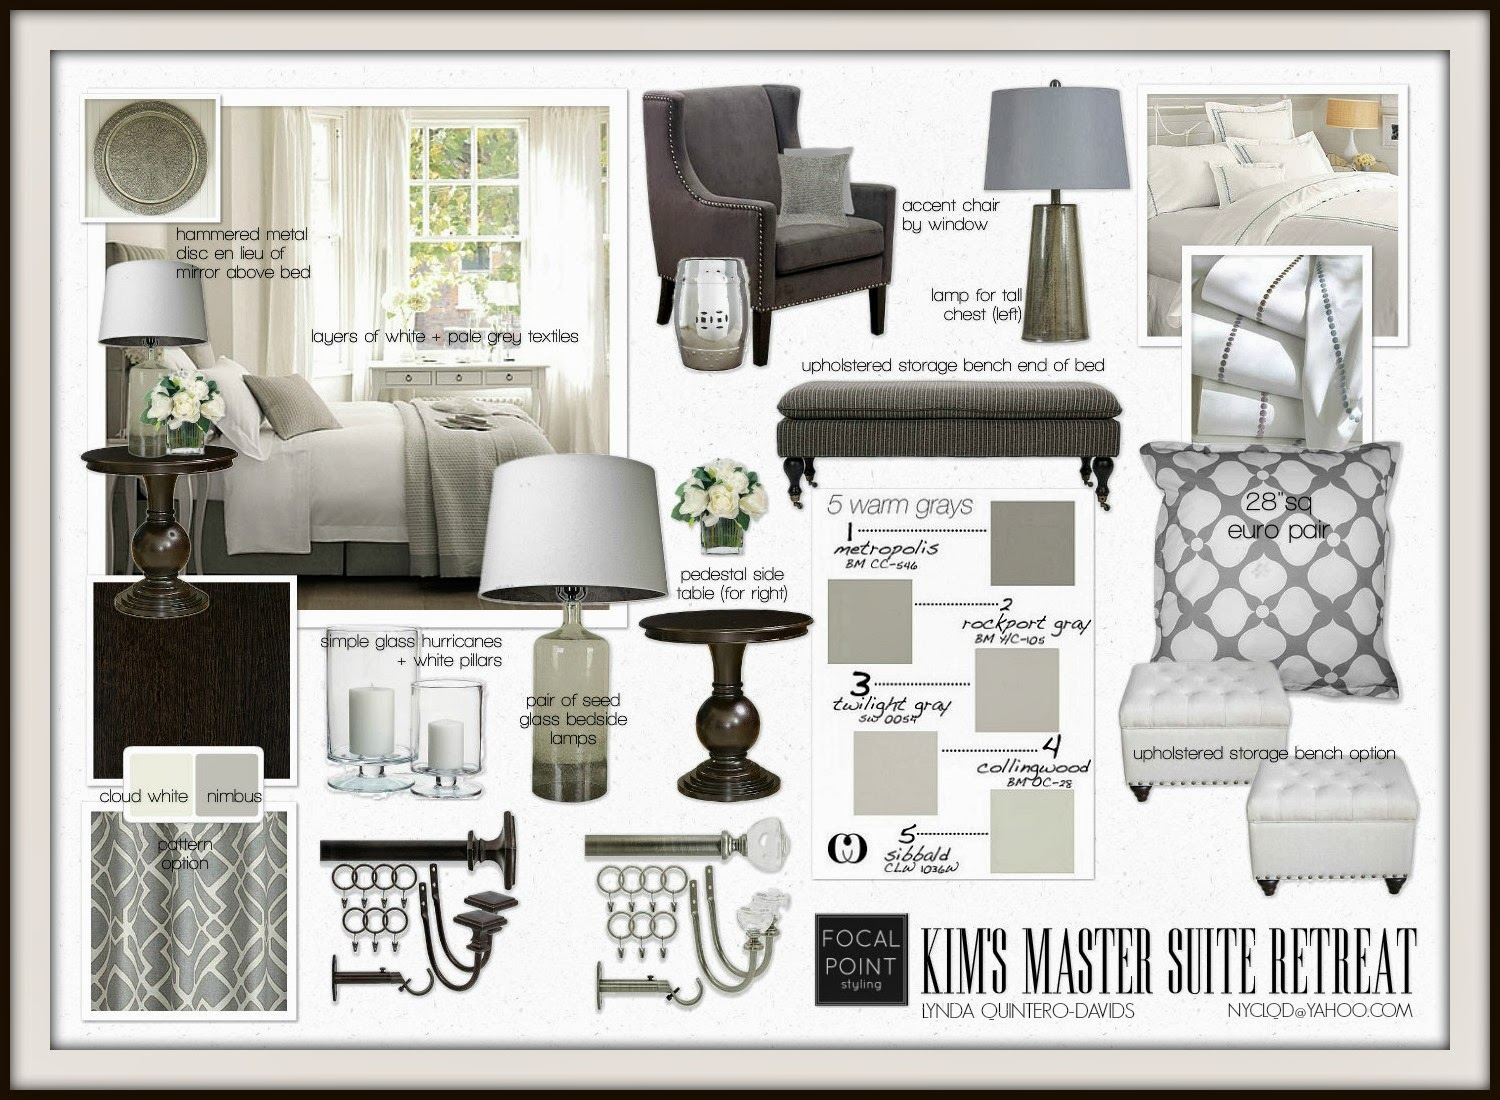 FOCAL POINT STYLING MASTER BEDROOM  STYLE GUIDANCE ON A